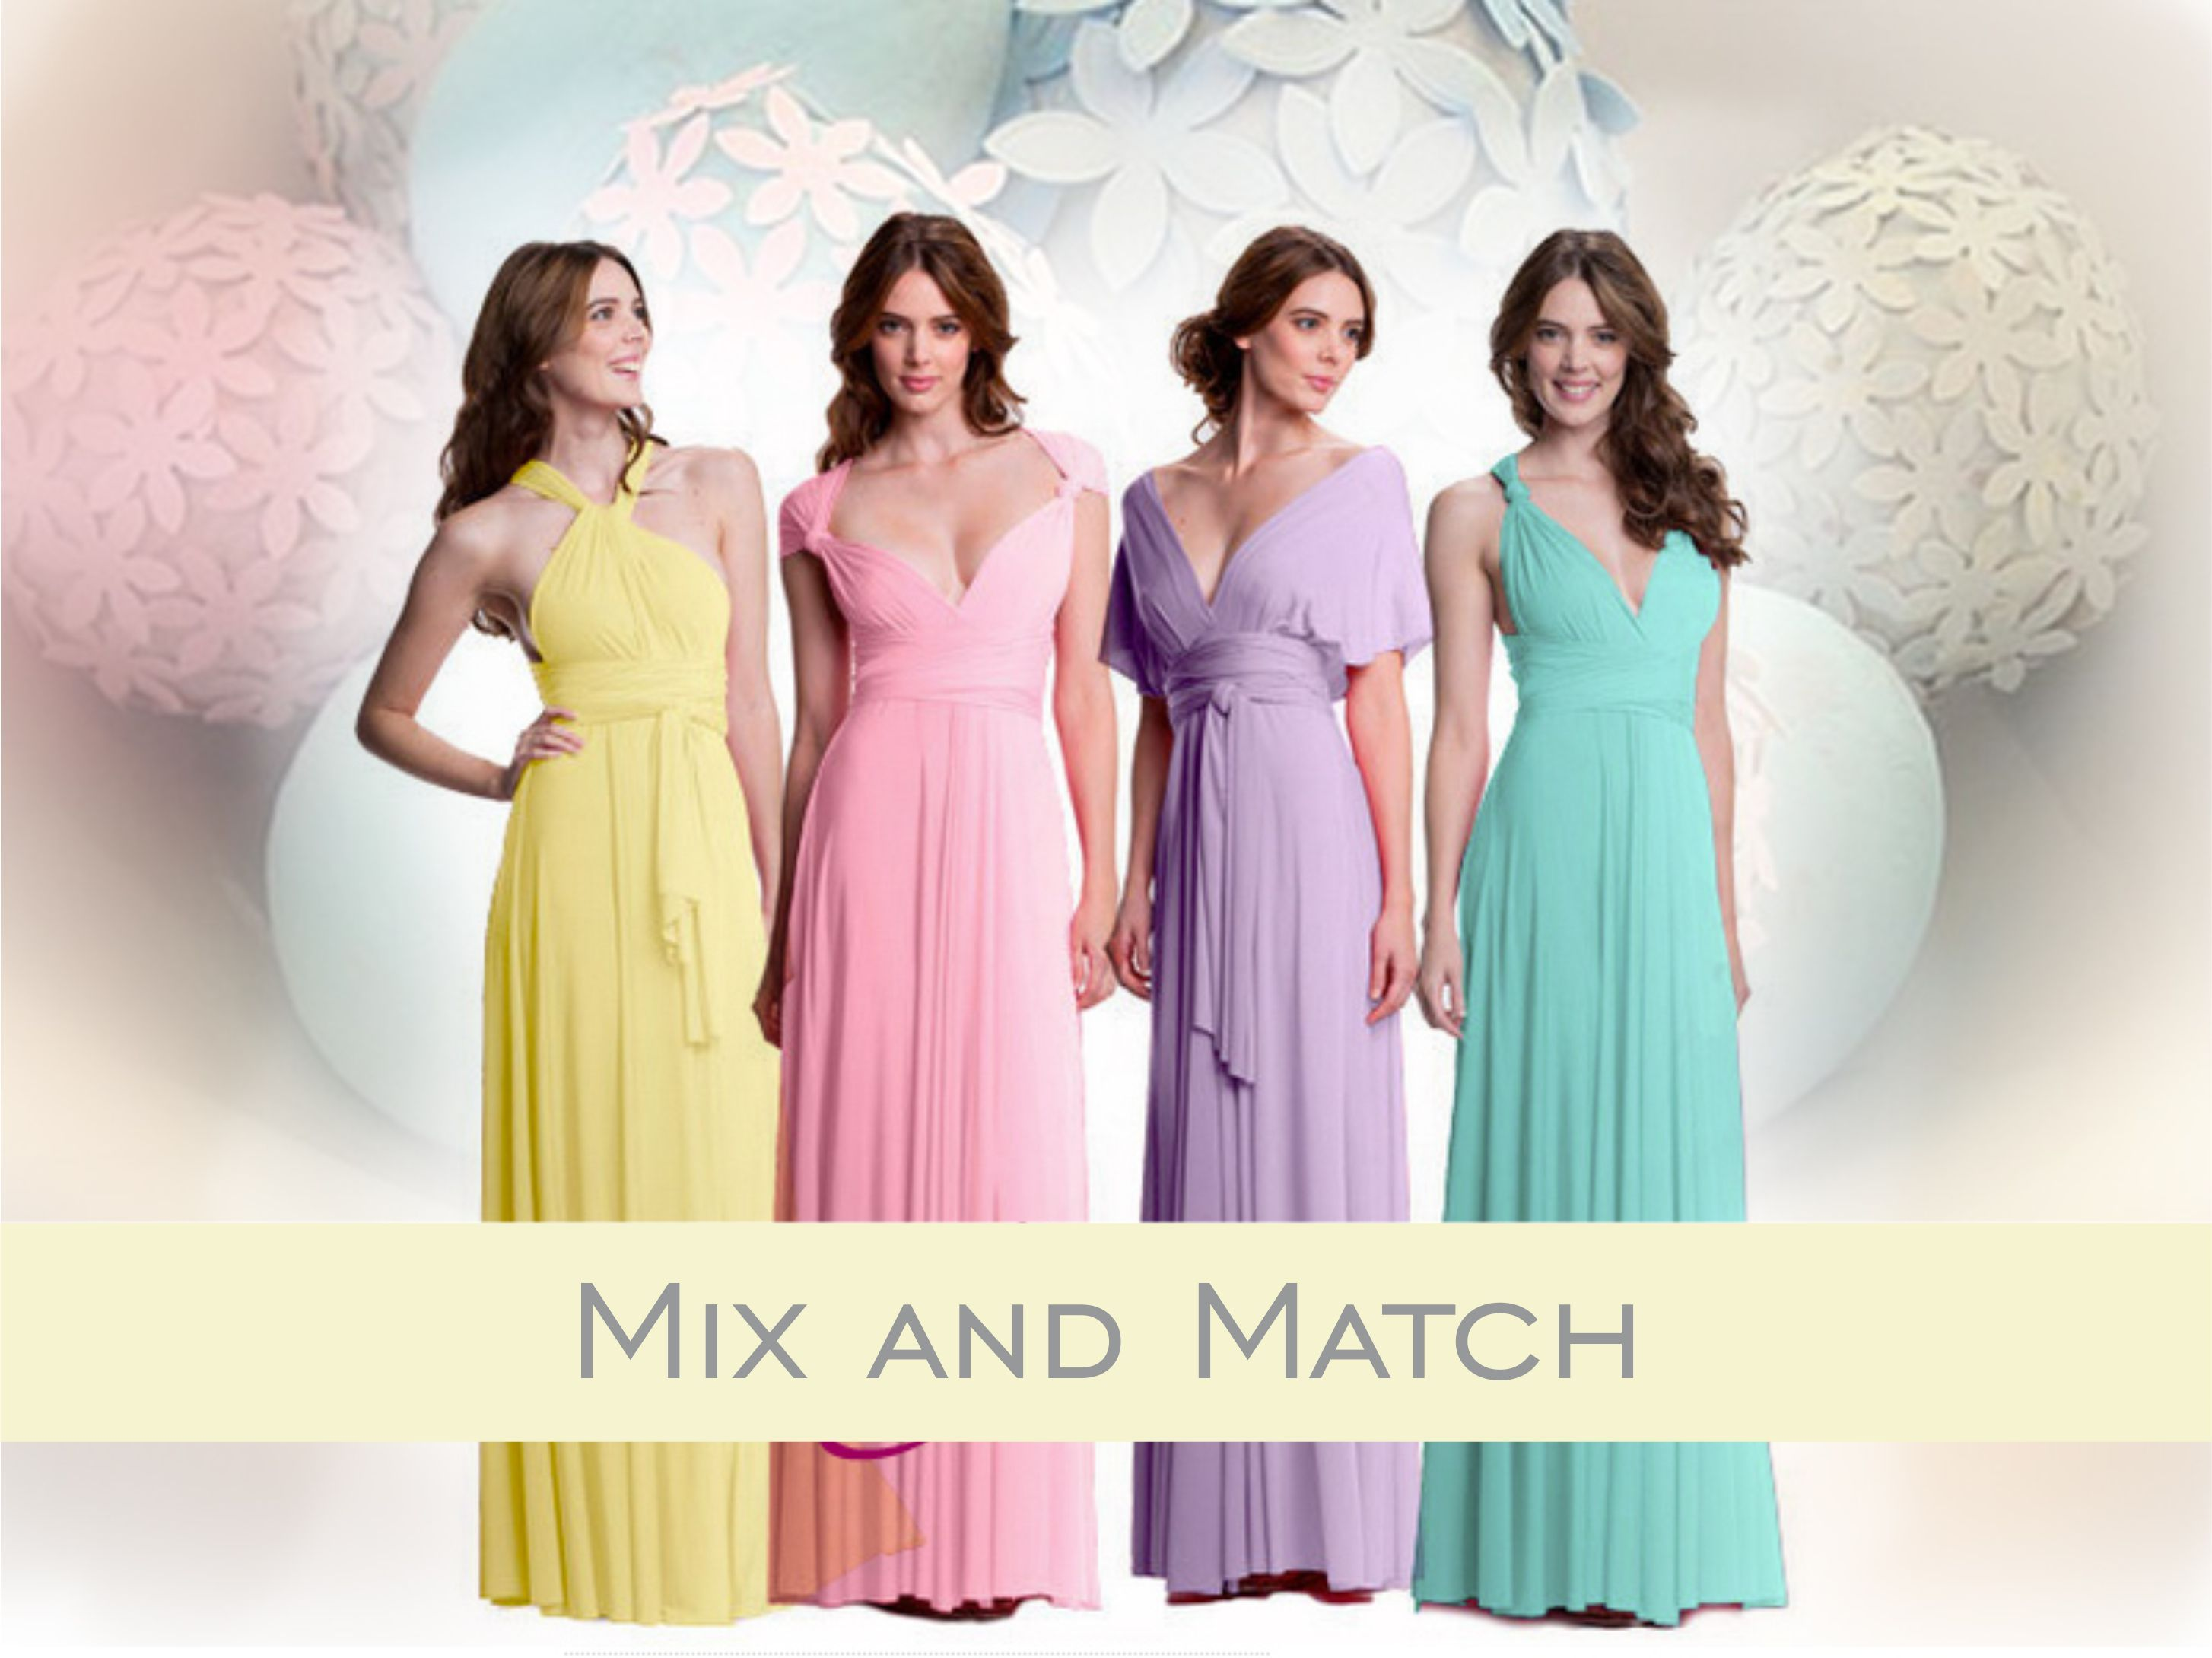 Colour Play – Mismatched Bridesmaids | Infinity dress blogs ...